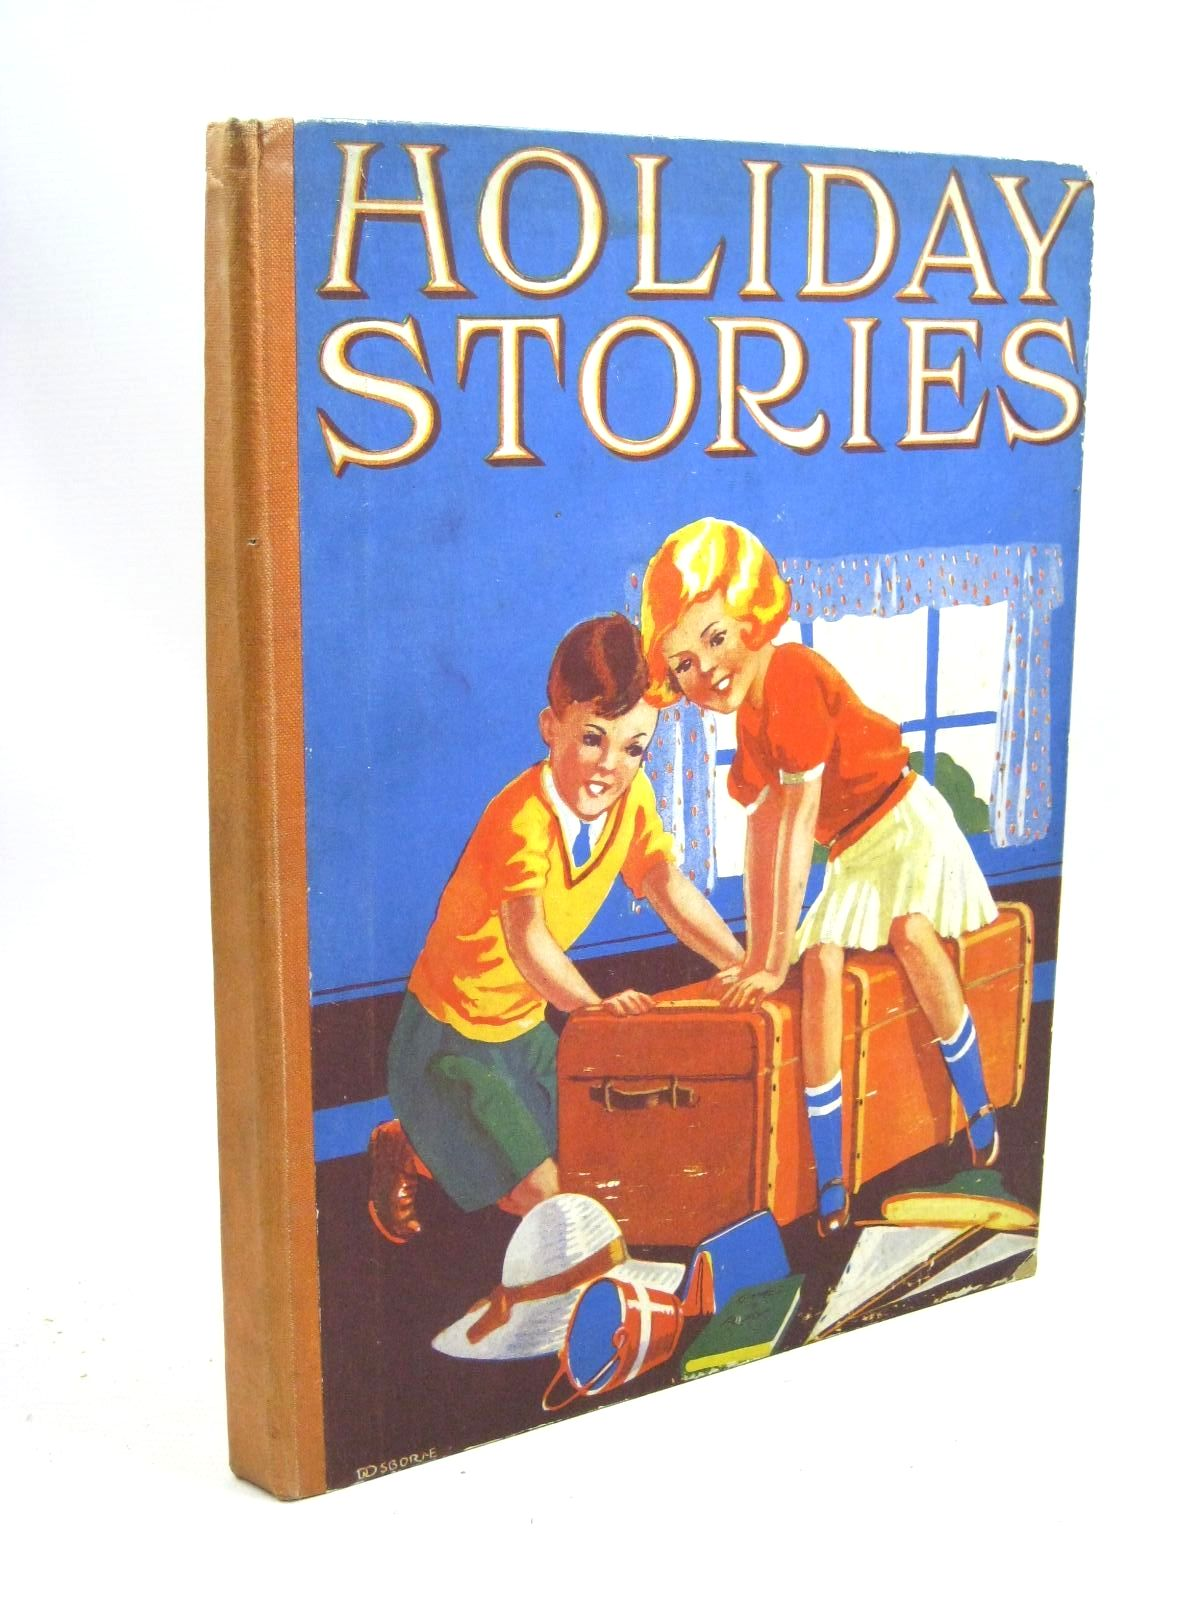 Photo of HOLIDAY STORIES written by Carruthers, M.I.K. Methley, Violet M. Heward, Constance Todd, Barbara E. Rutley, Cecily M. et al, illustrated by Burgess, Ethel K. Rees, E. Dorothy Sutcliffe, Norman Cowham, Hilda et al., published by Collins Clear-Type Press (STOCK CODE: 1505973)  for sale by Stella & Rose's Books